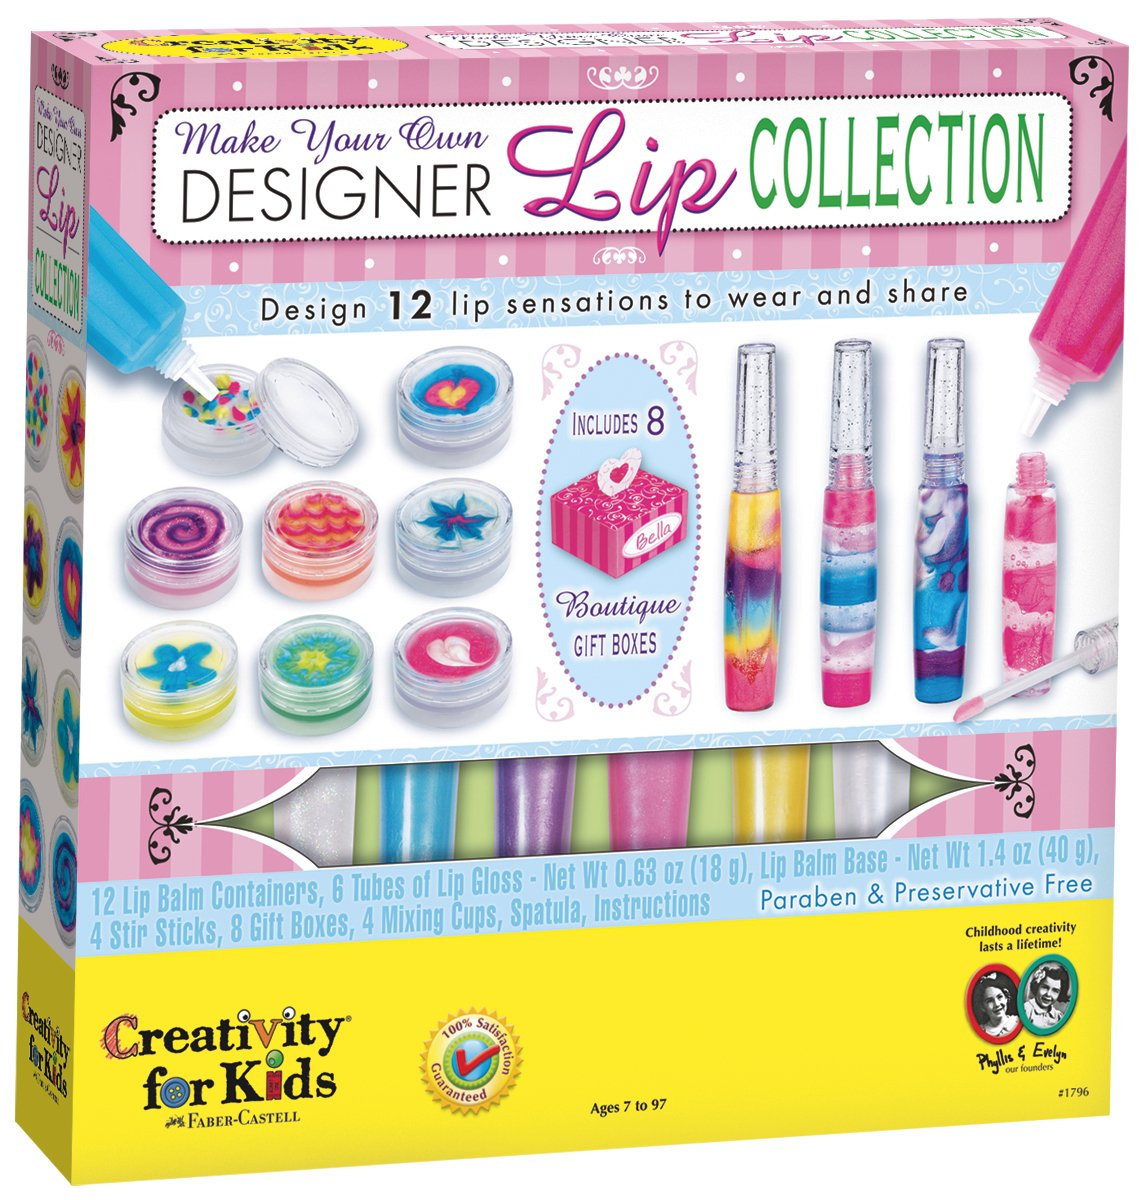 Creativity for Kids Make Your Own Designer Lip Collection - Makes 9 Lip Balms and 3 Lip Glosses